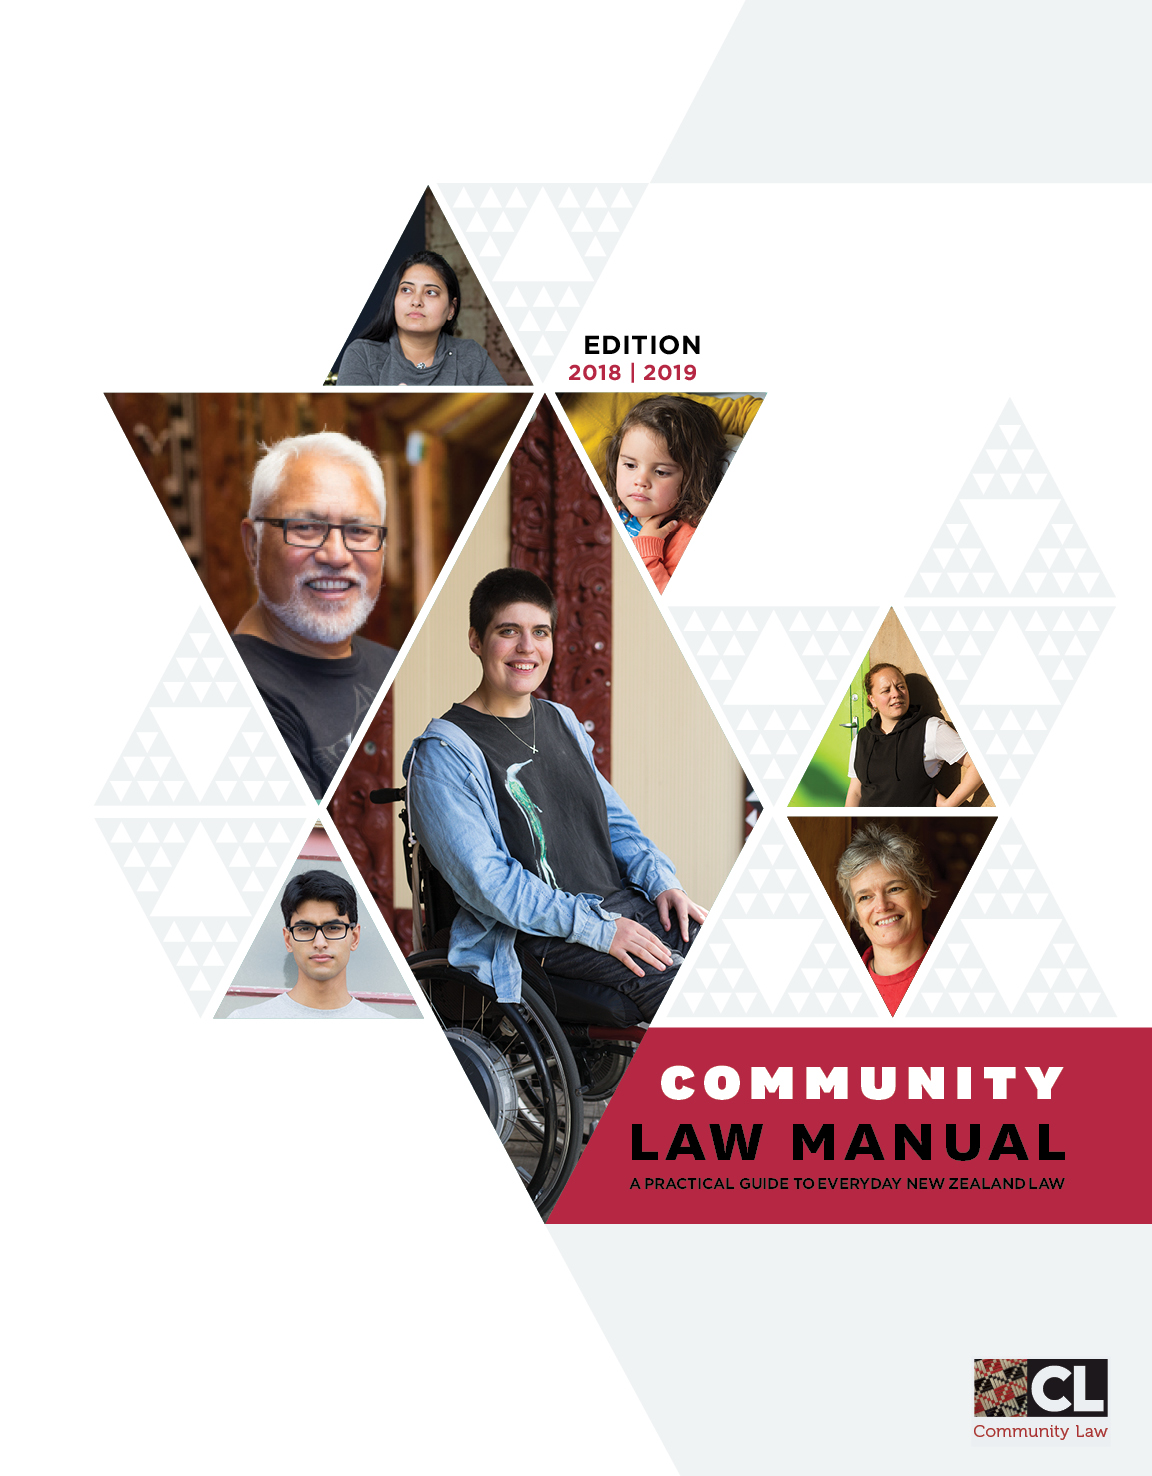 Community Law Manual edition 2018-19 cover.